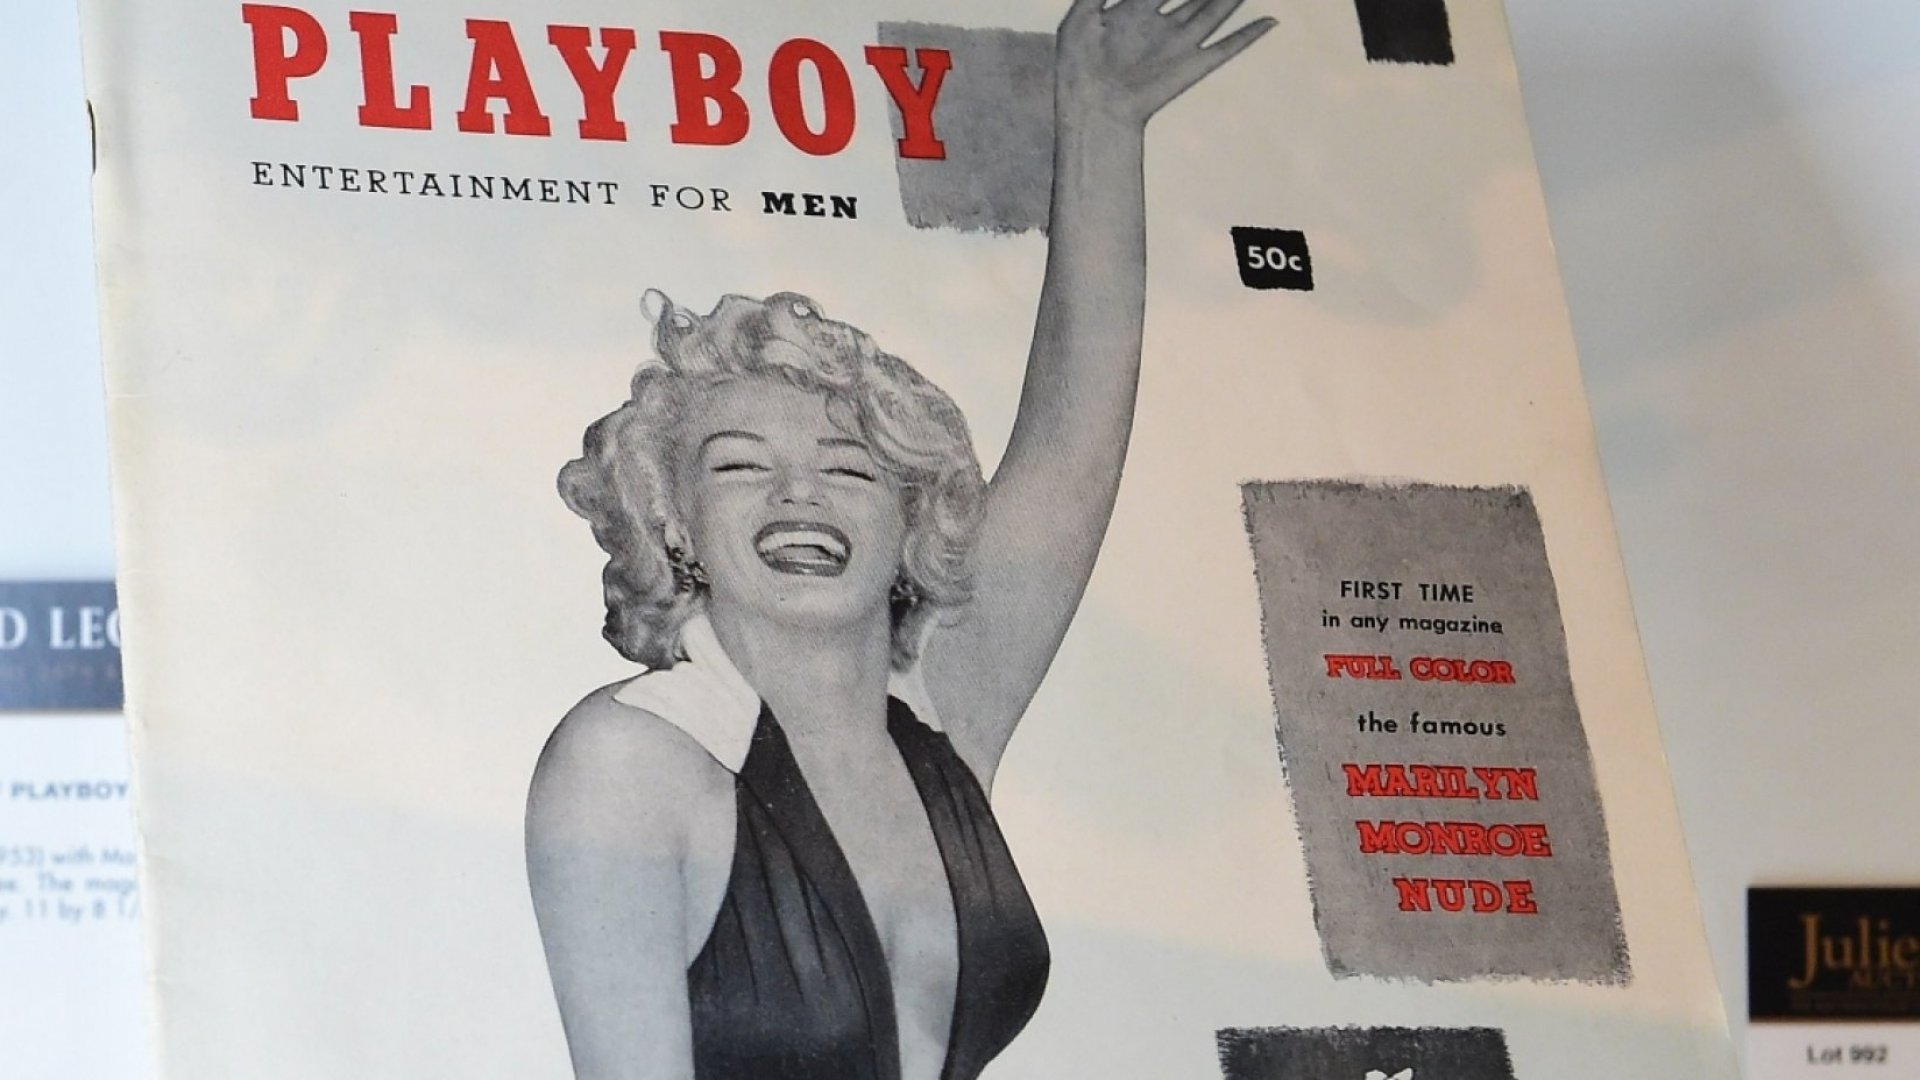 The first issue of Playboy came out in December, 1953.